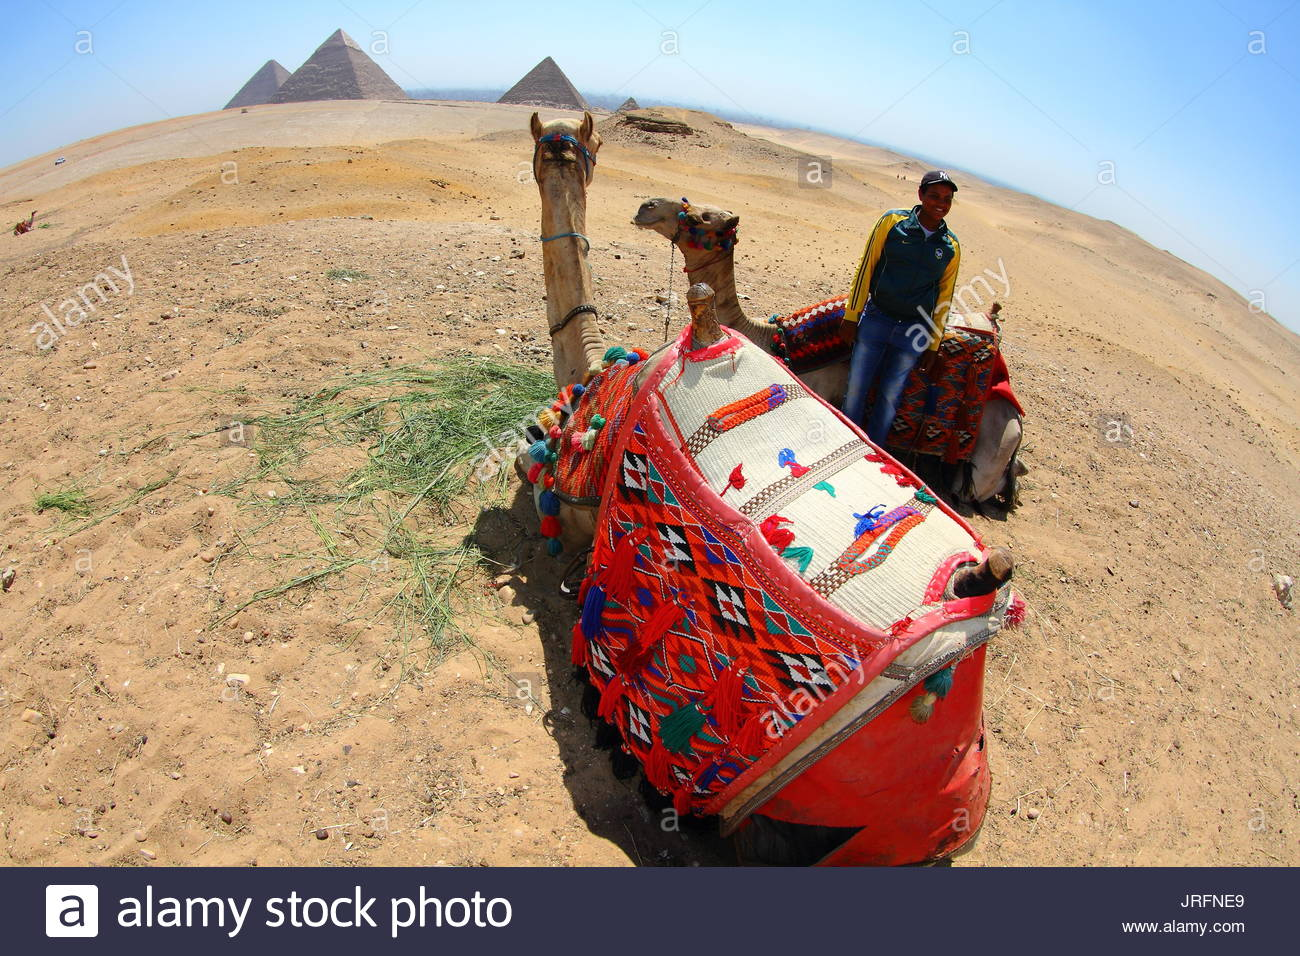 Egypt - Cairo - Pyramids site, camel and camel rider - Stock Image